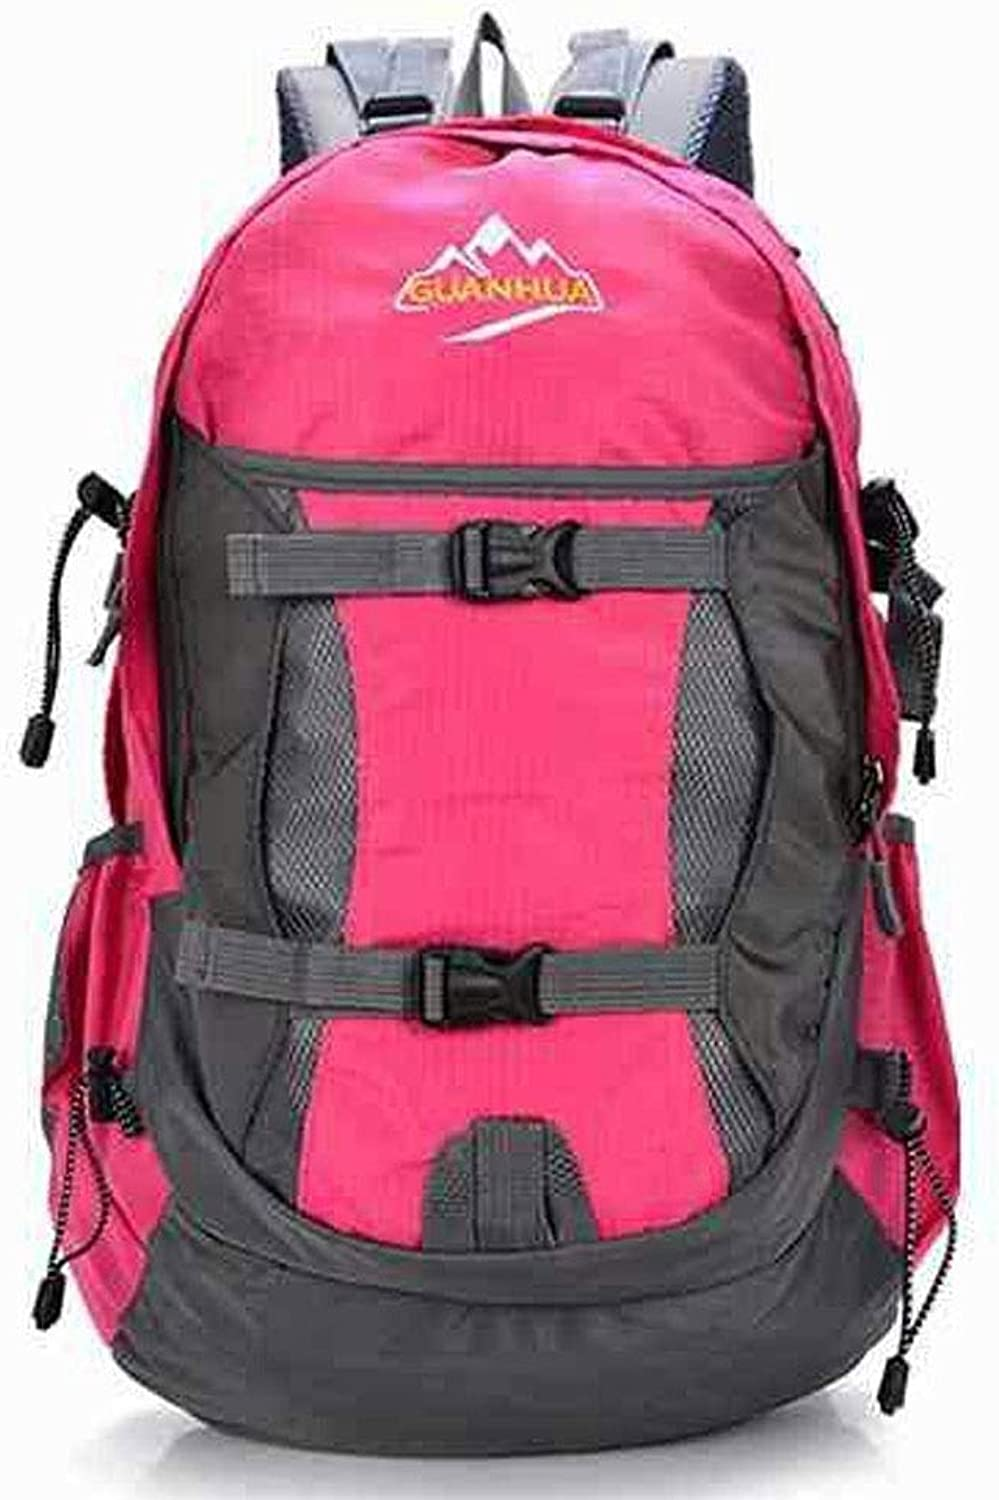 Men and women outdoor backpack Camping professional travel bag Large capacity 40L waterproof nylon mountaineering bagpinkred